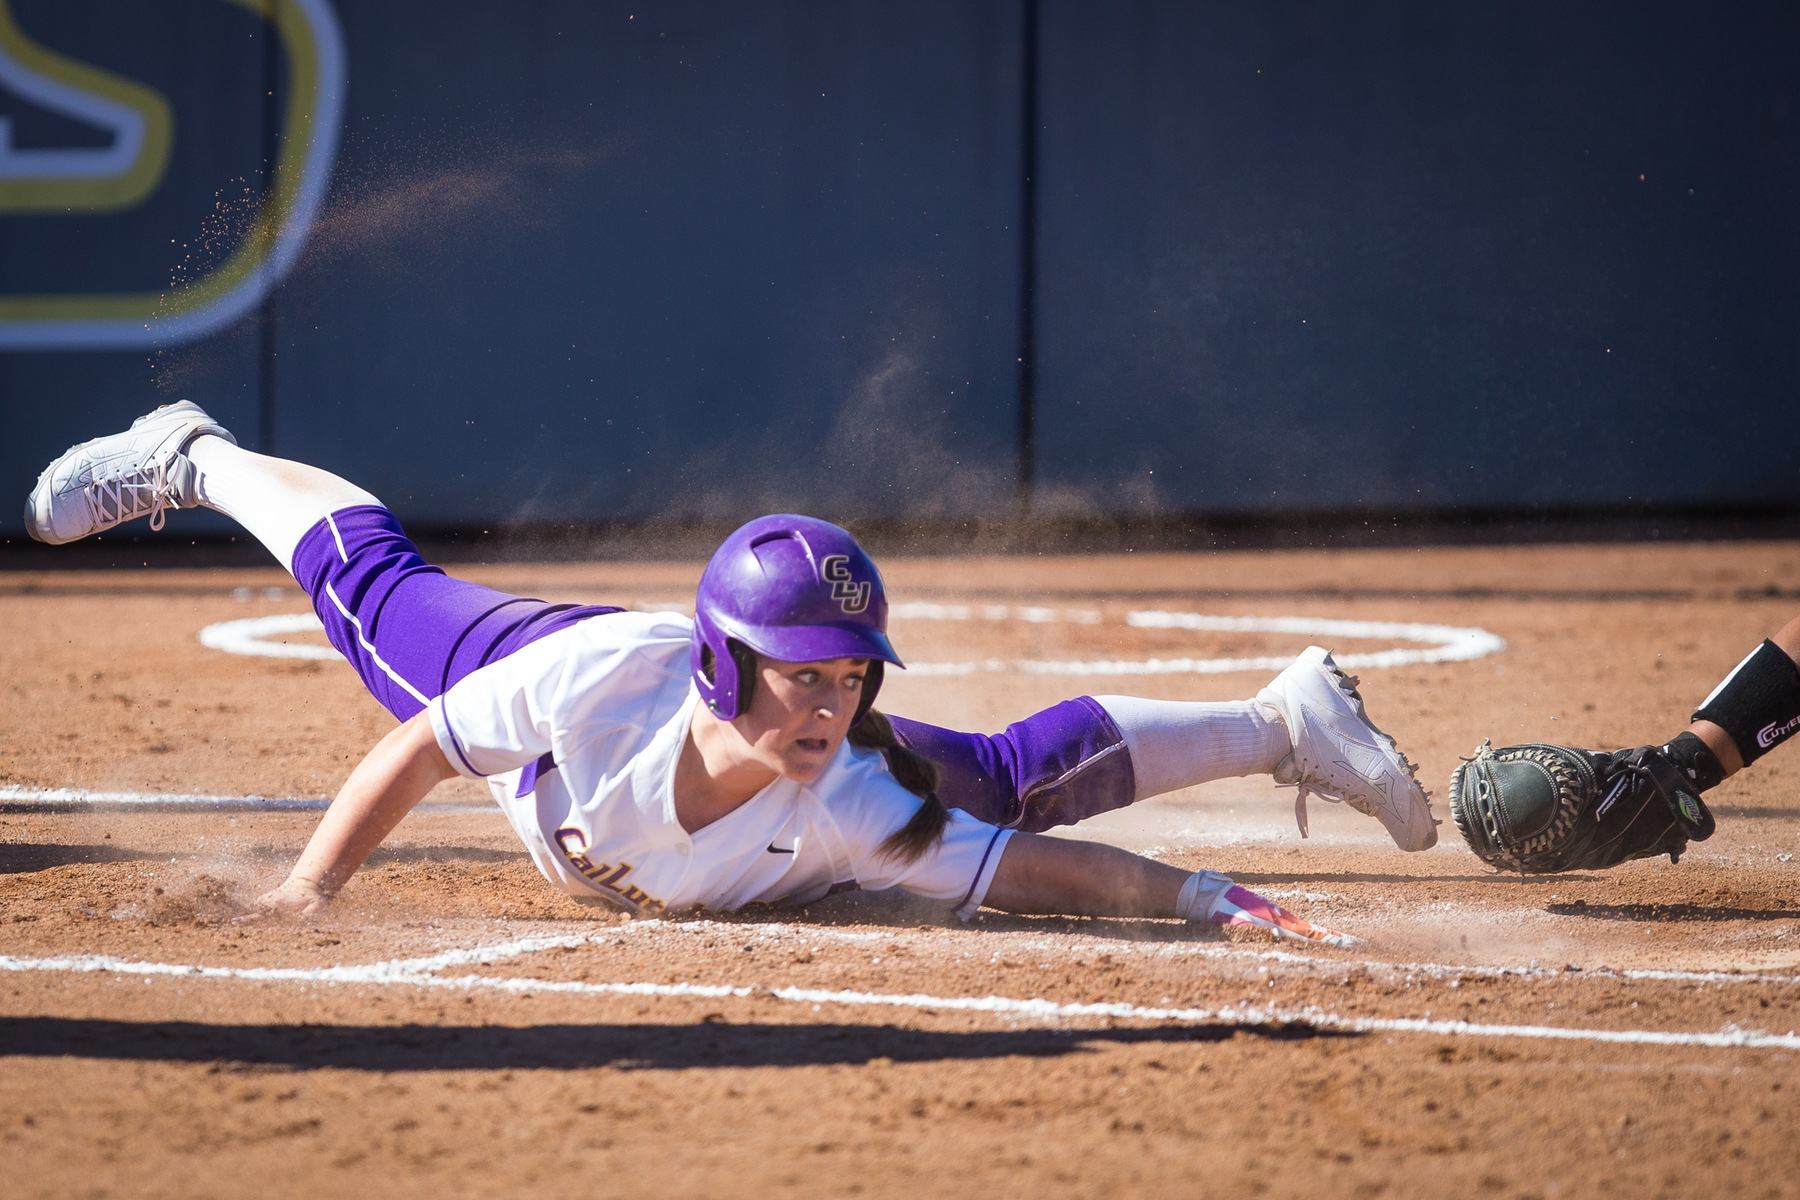 Kendall Marinesi slides into home. Photo by Dave Donovan.